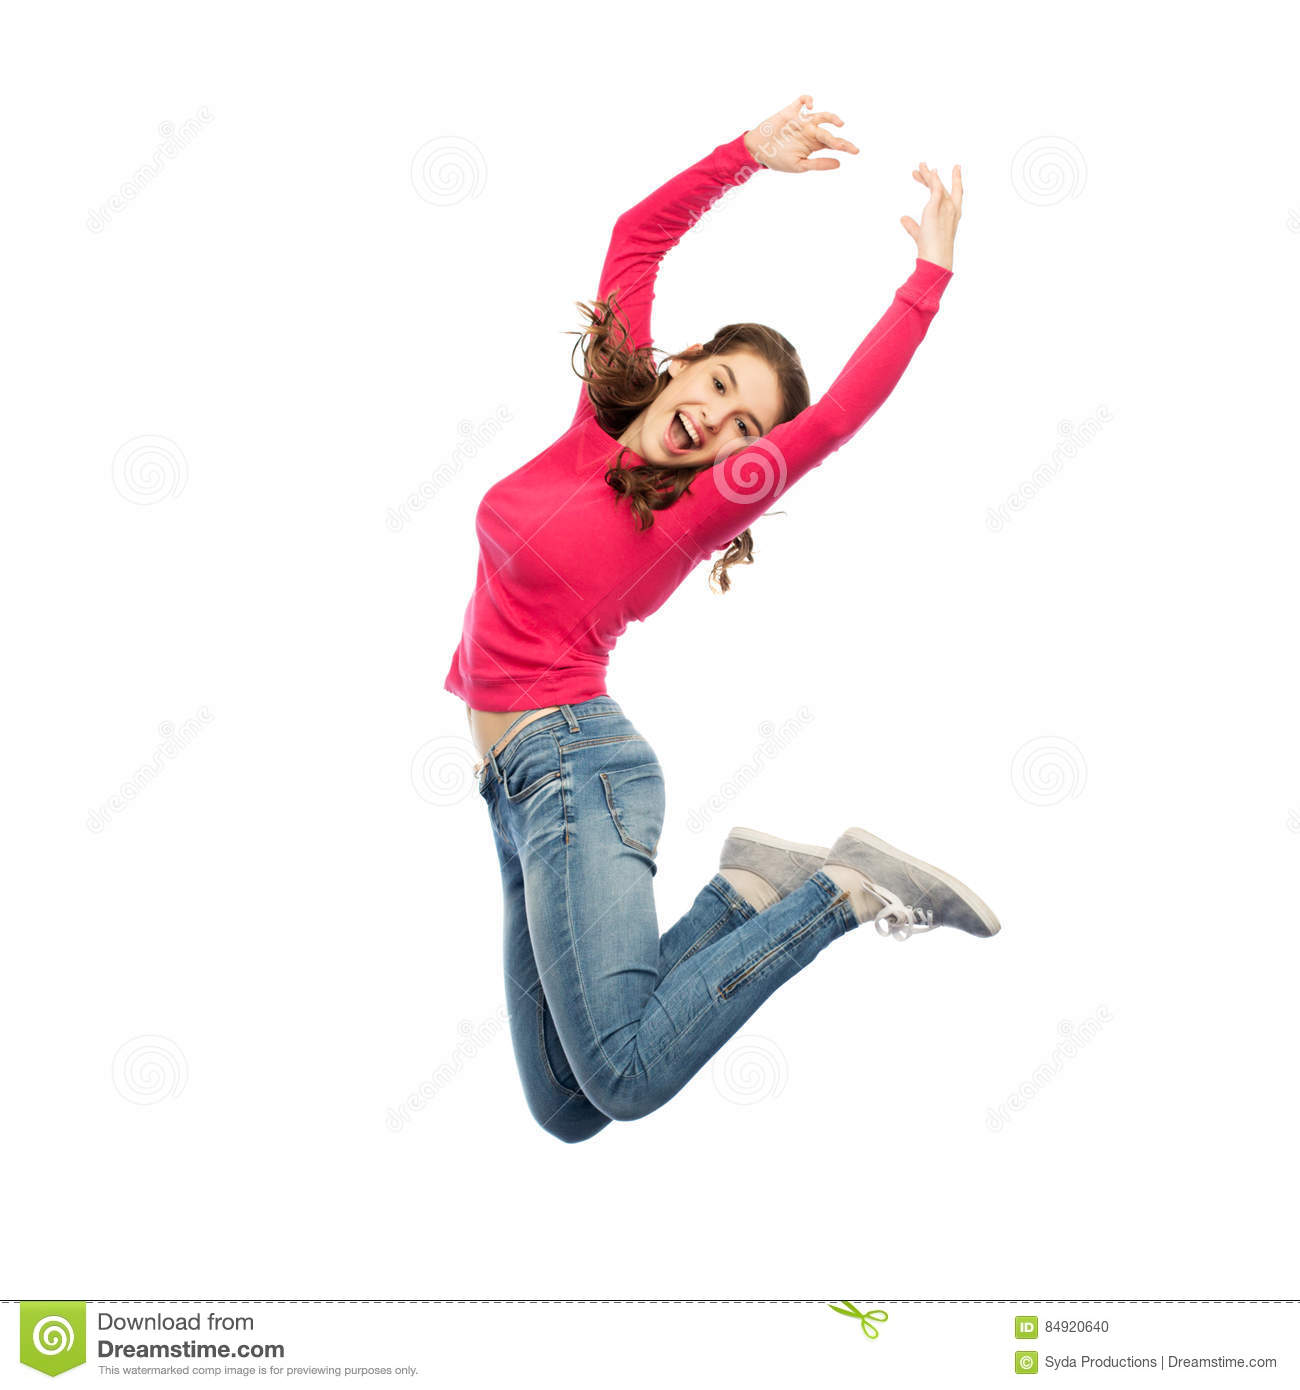 Download Happy Young Woman Jumping In Air Or Dancing Stock Photo - Image of carefree, flight: 84920640